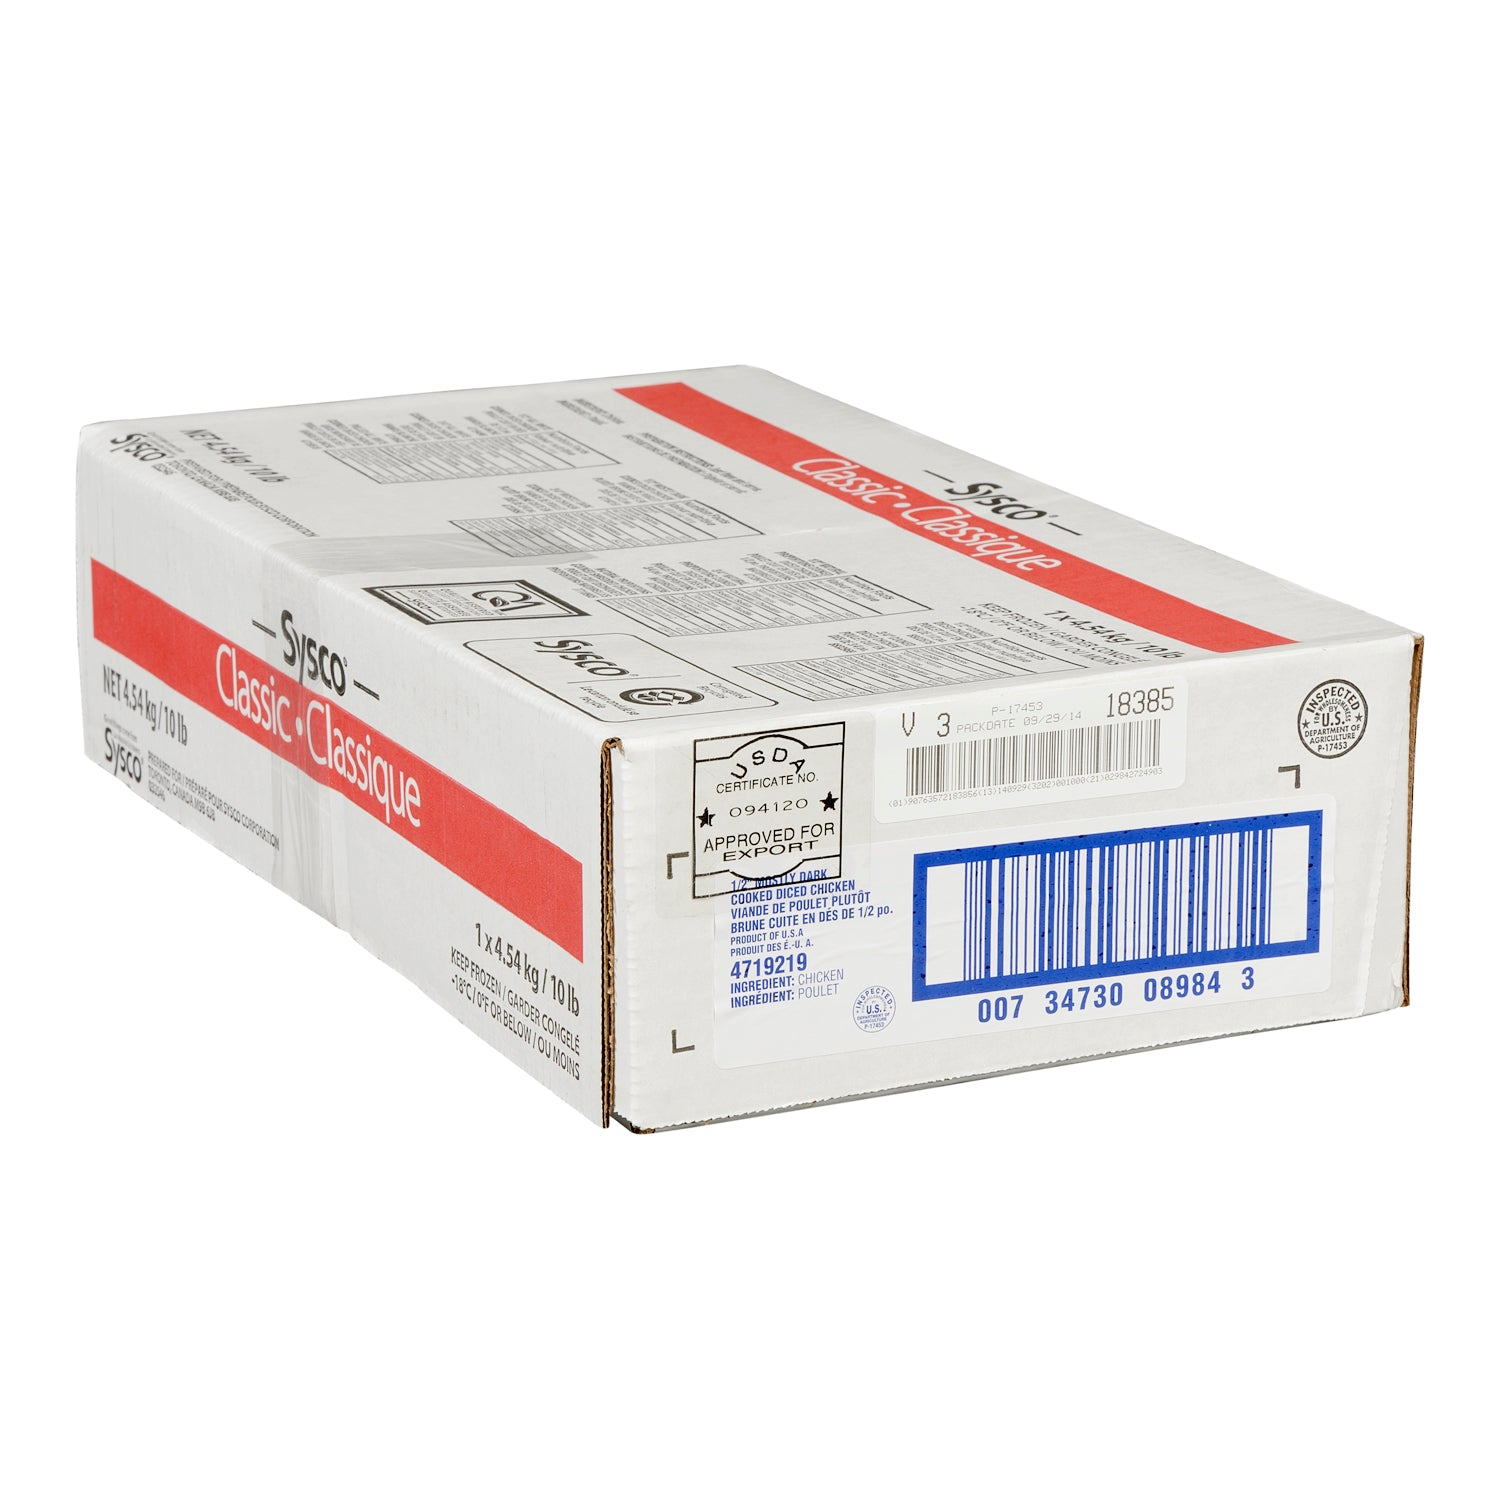 Sysco Classic Frozen Diced Chicken 1/2 Dark Meat 2.27 kg Fully Cooked - 2 Pack [$12.22/kg]